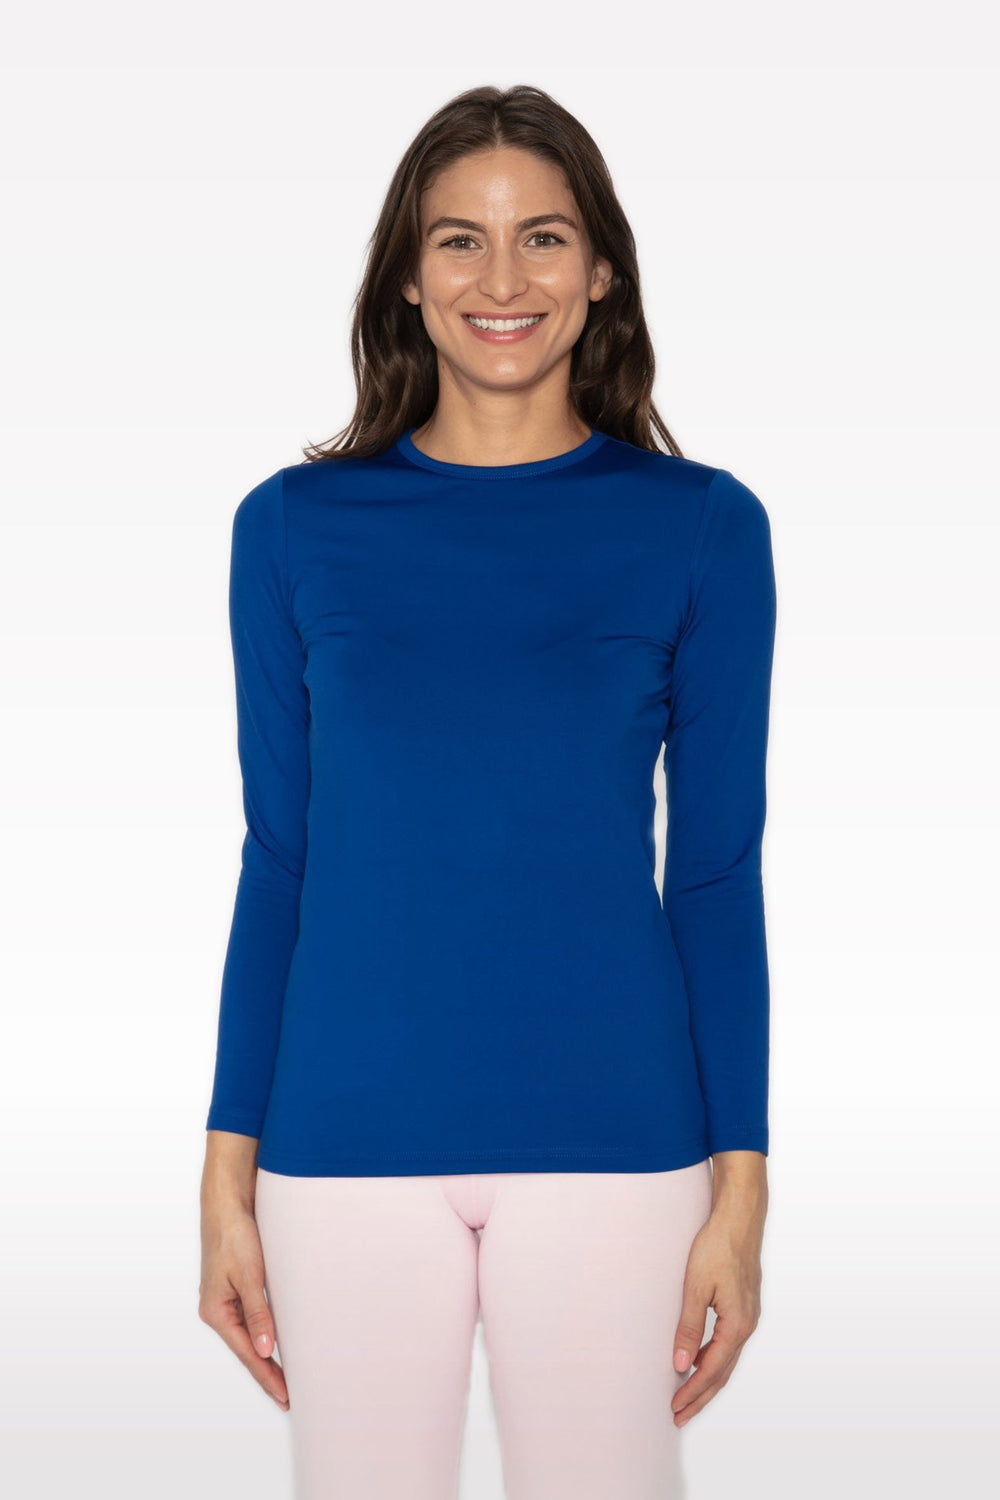 Women's Crew Neck Thermal Royal Blue Shirt